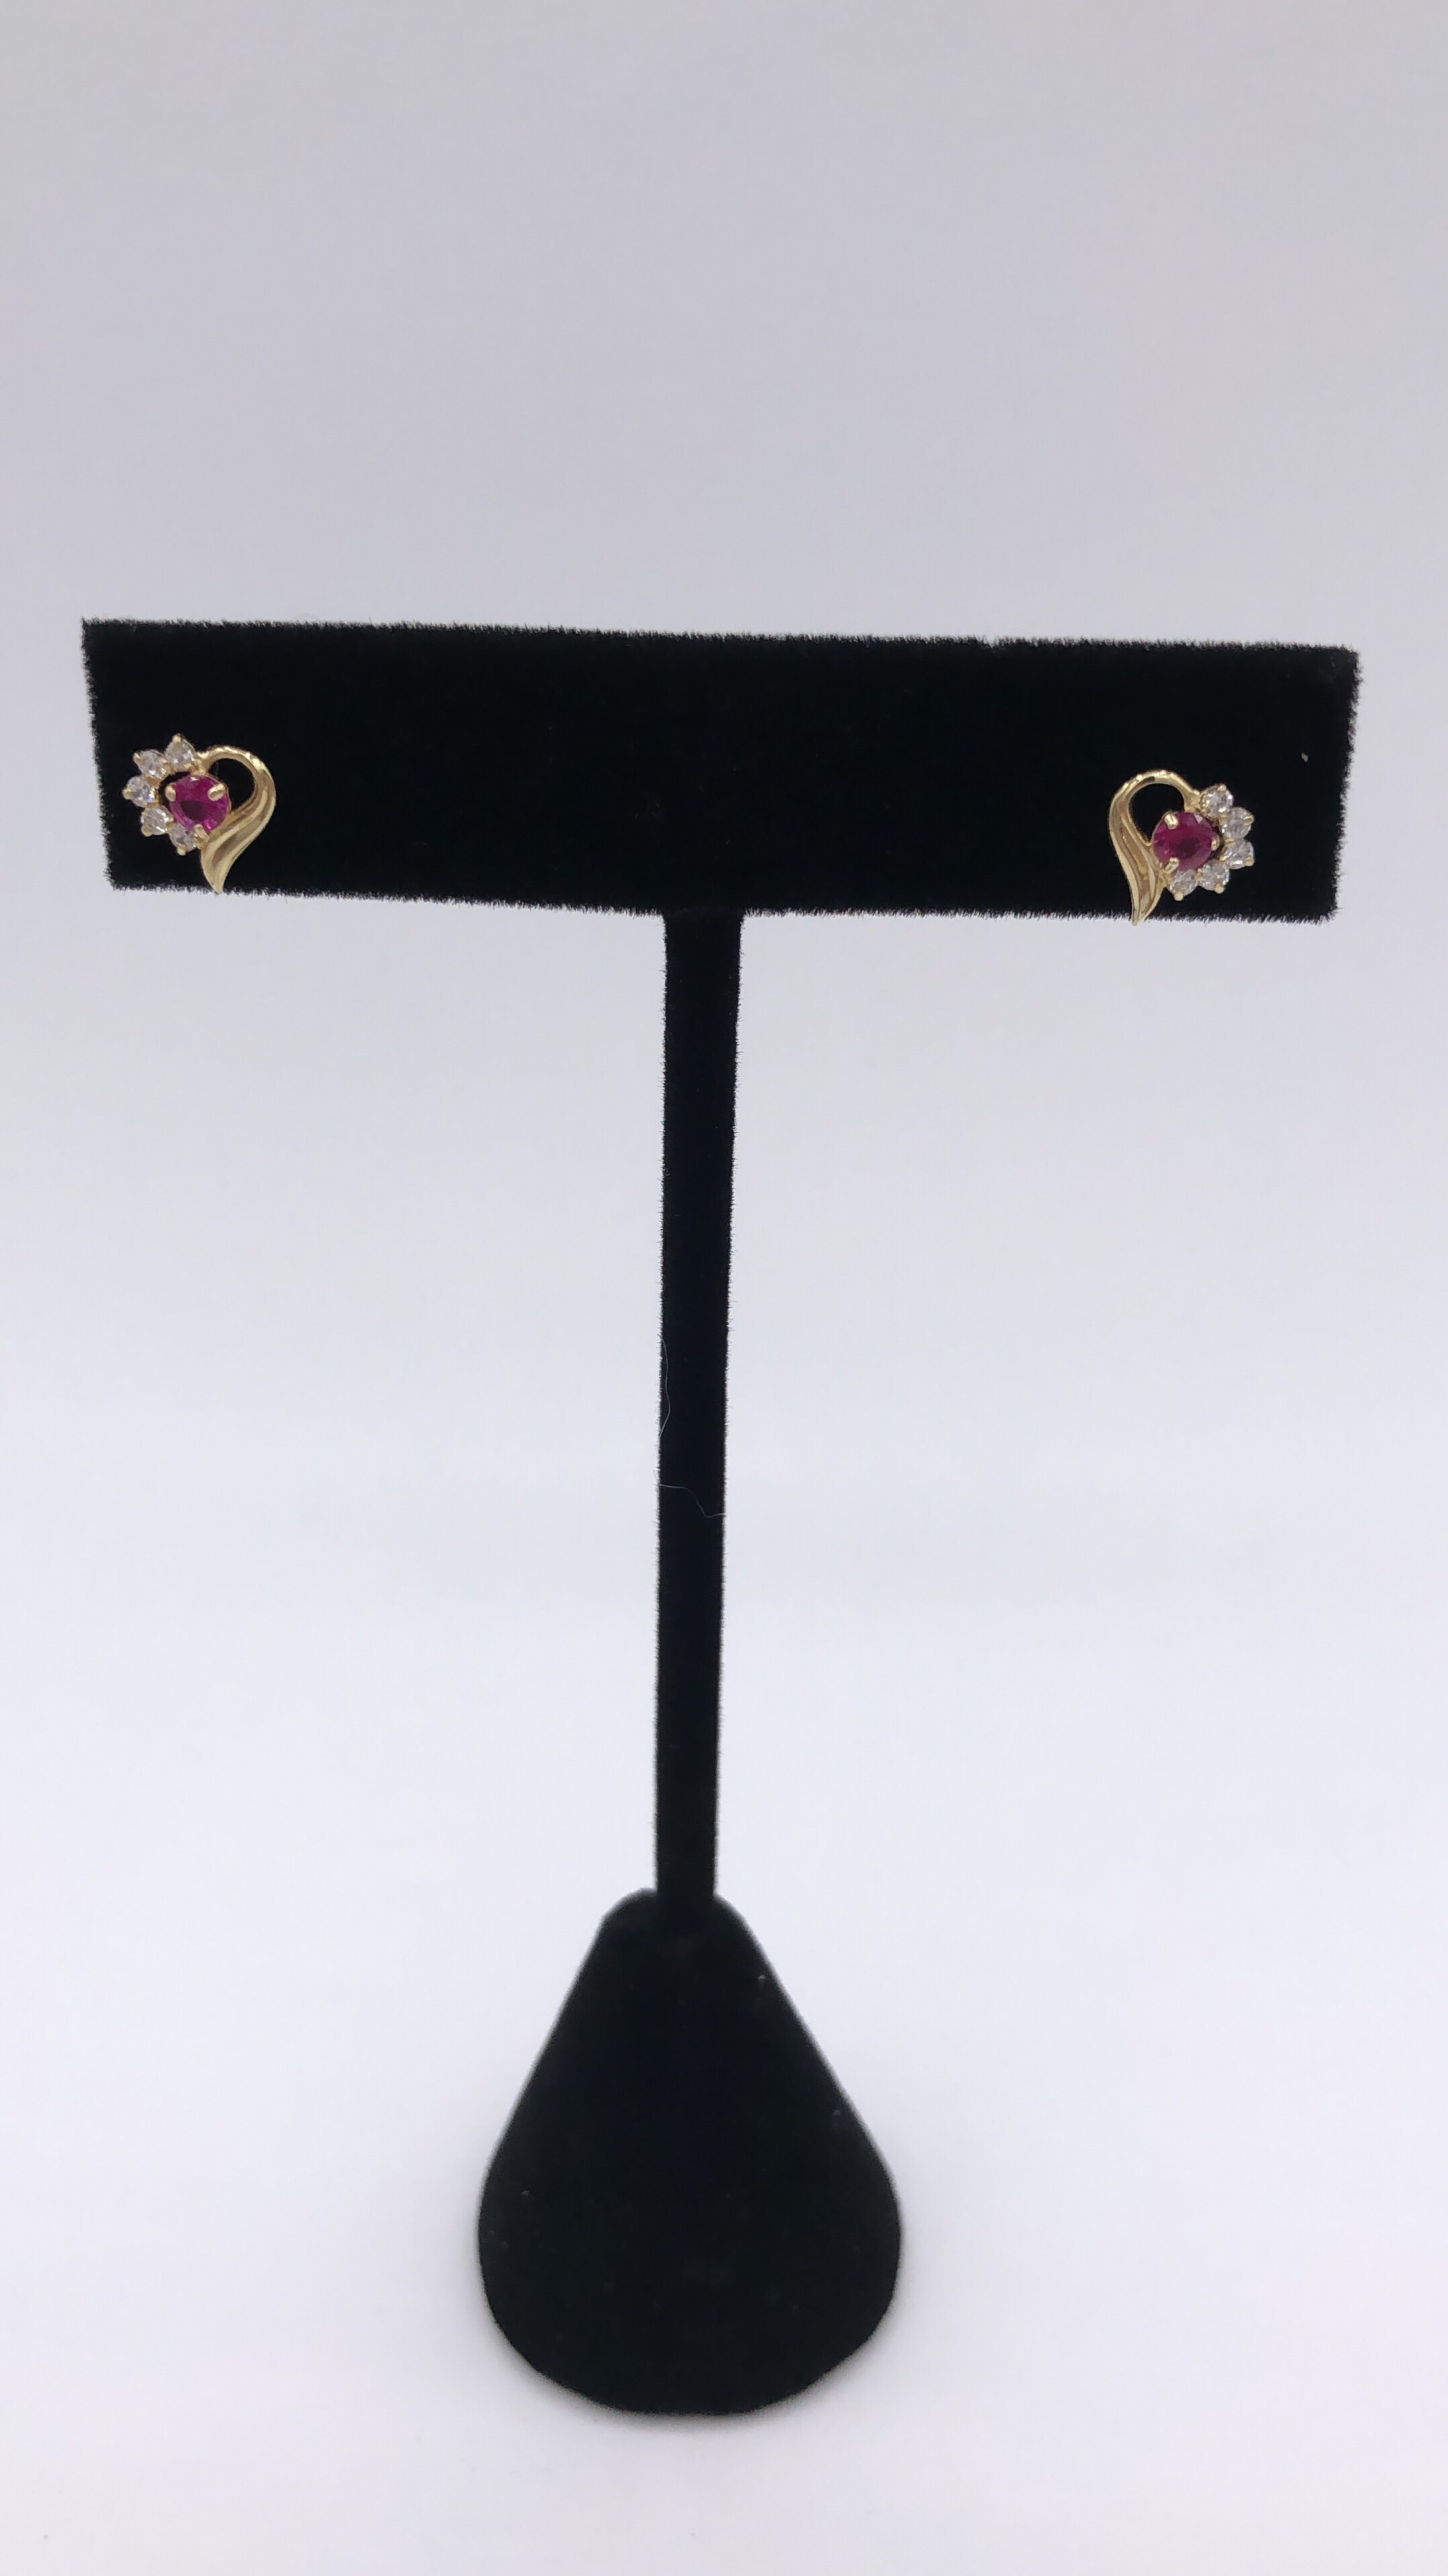 14k Gold Ruby Heart Earring Post